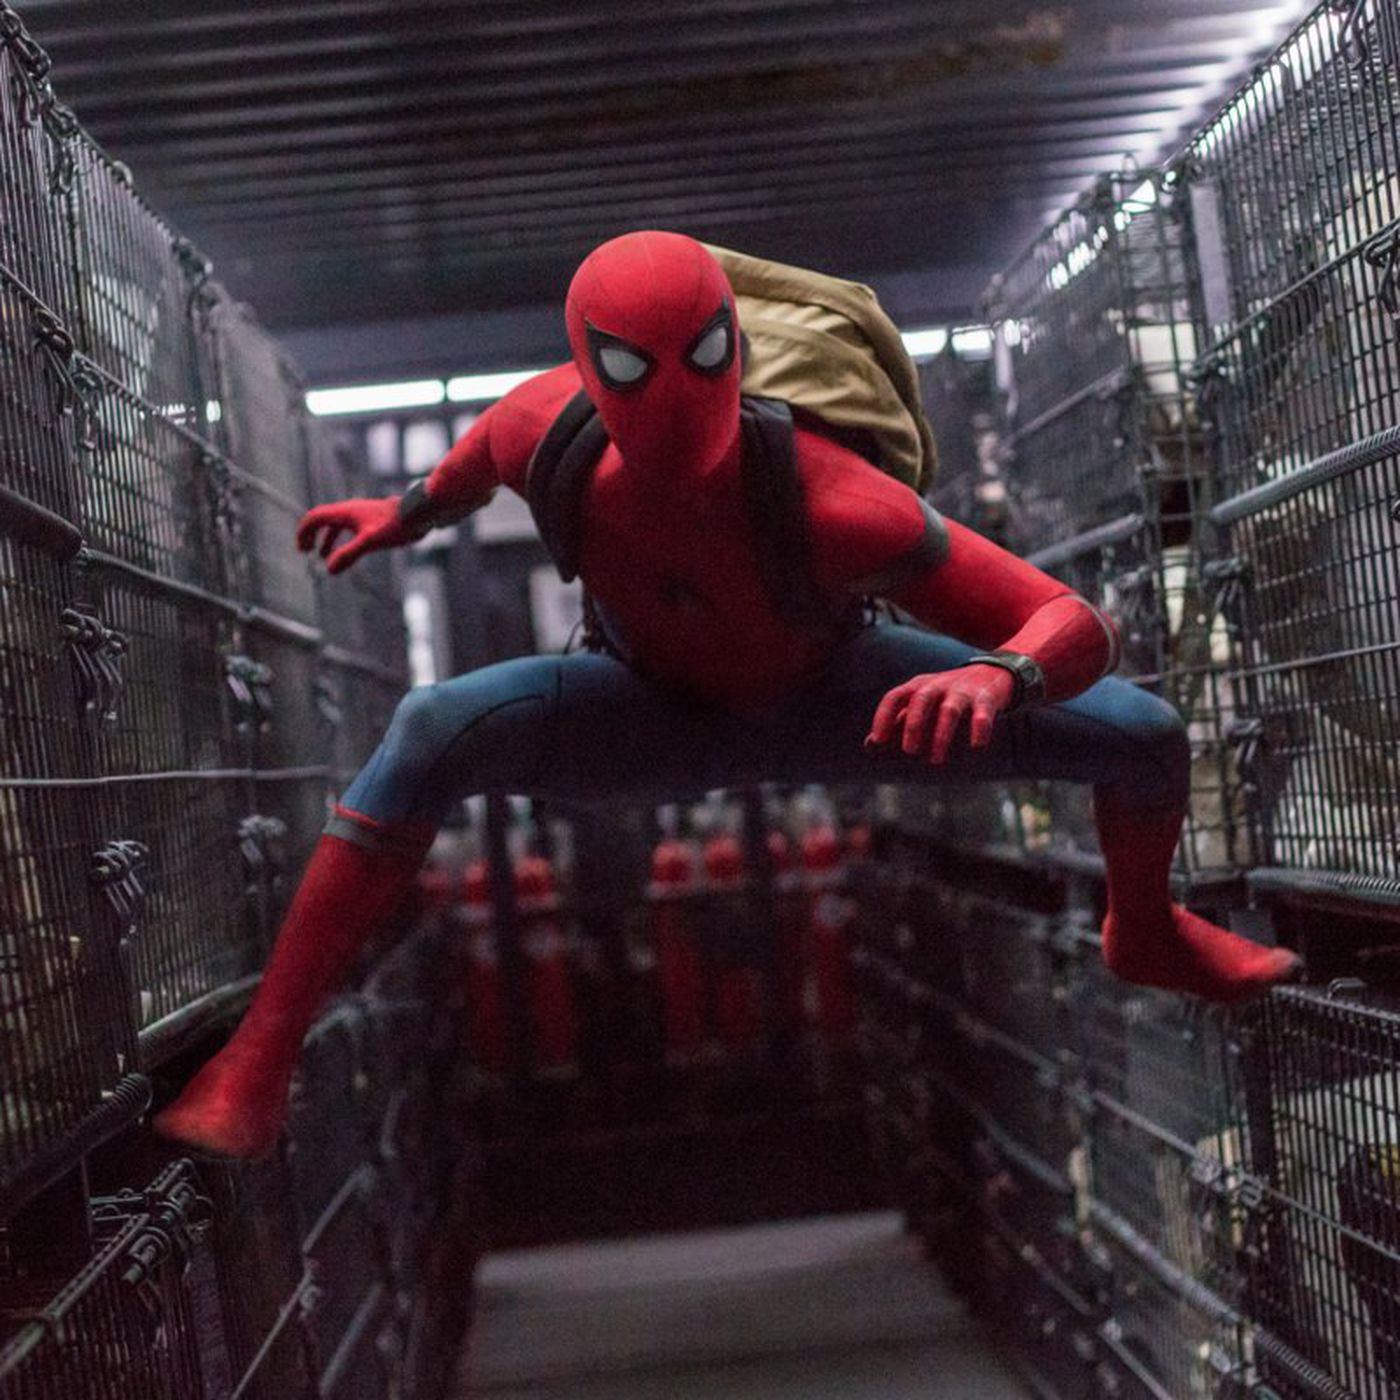 Disney Doesn T Have Plans To Bring Live Action Spider Man Movies To Disney The Verge